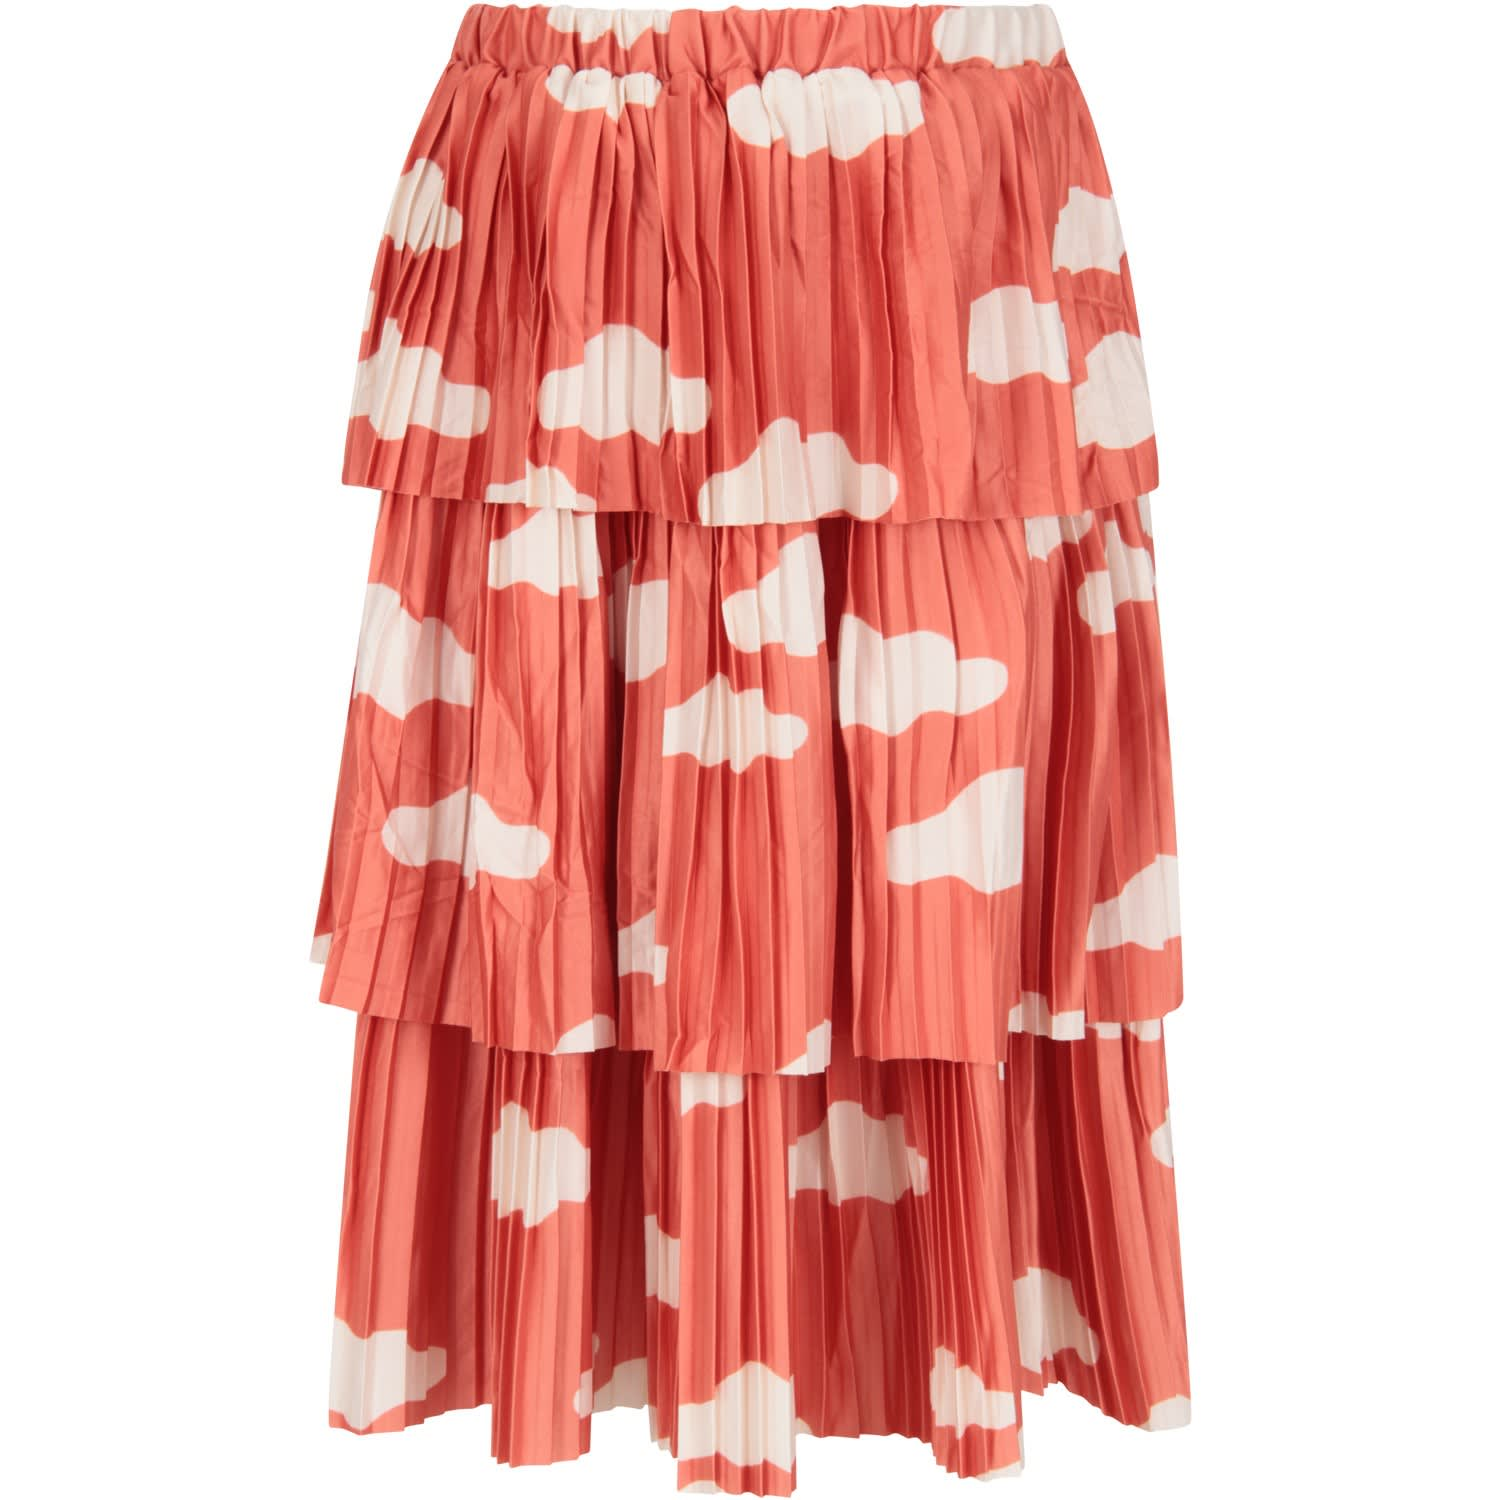 Bobo Choses ORANGE GIRL SKIRT WITH CLOUDS